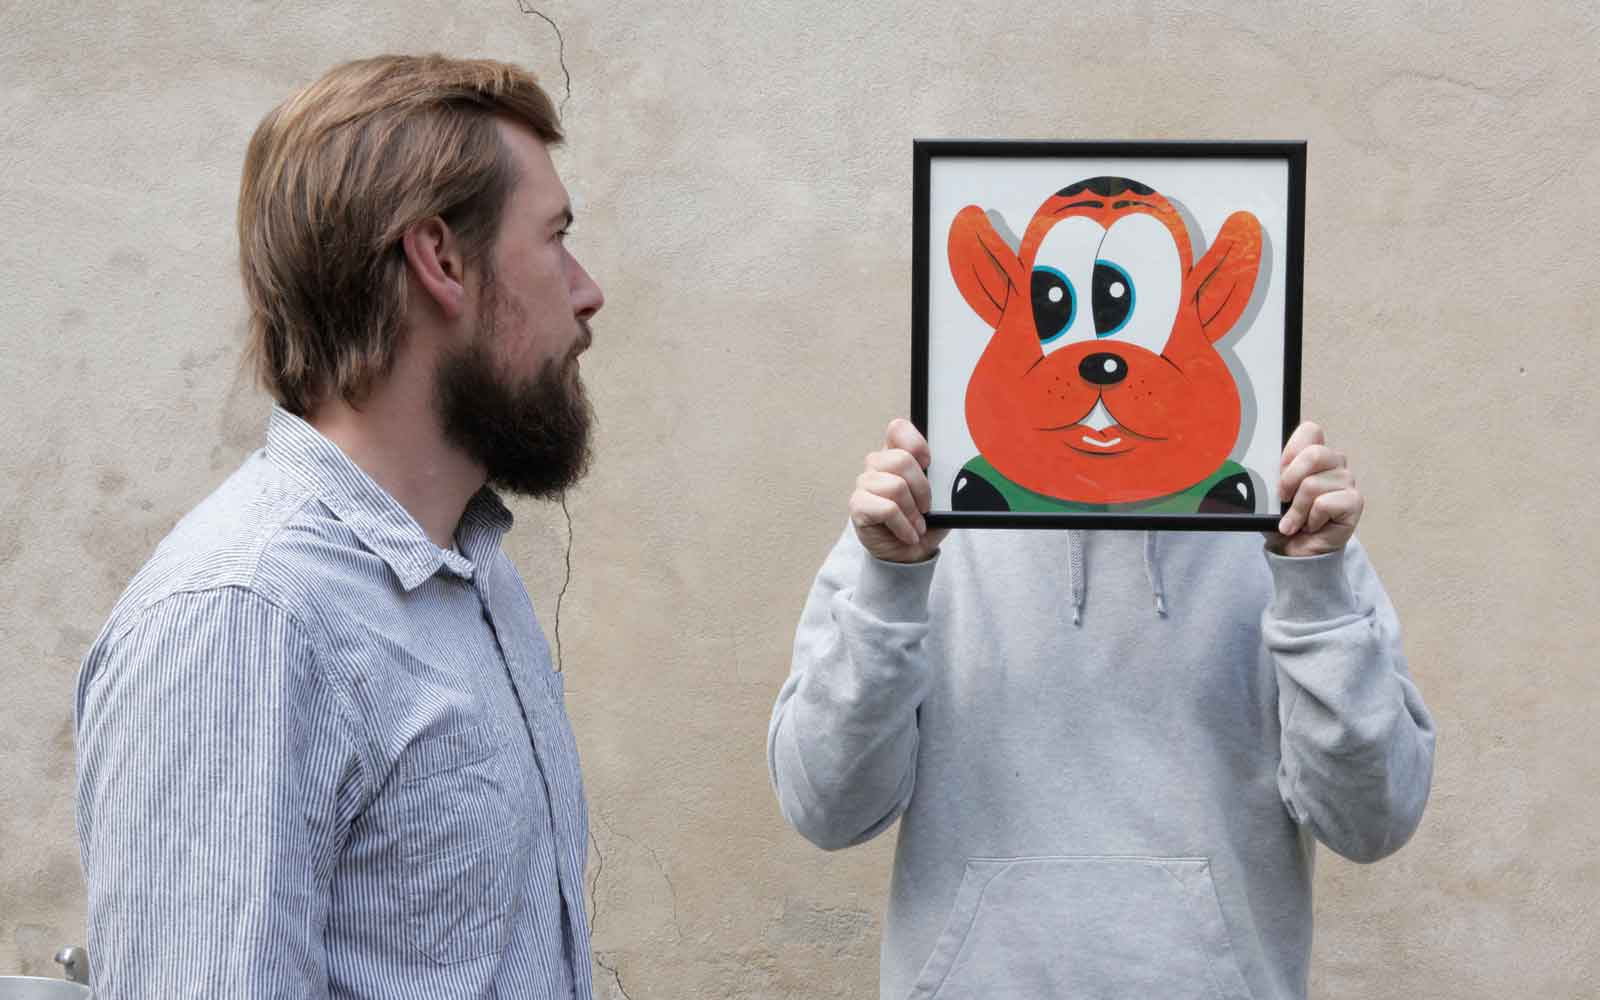 HuskMitNavn and troels øder with picture in front of face wall background